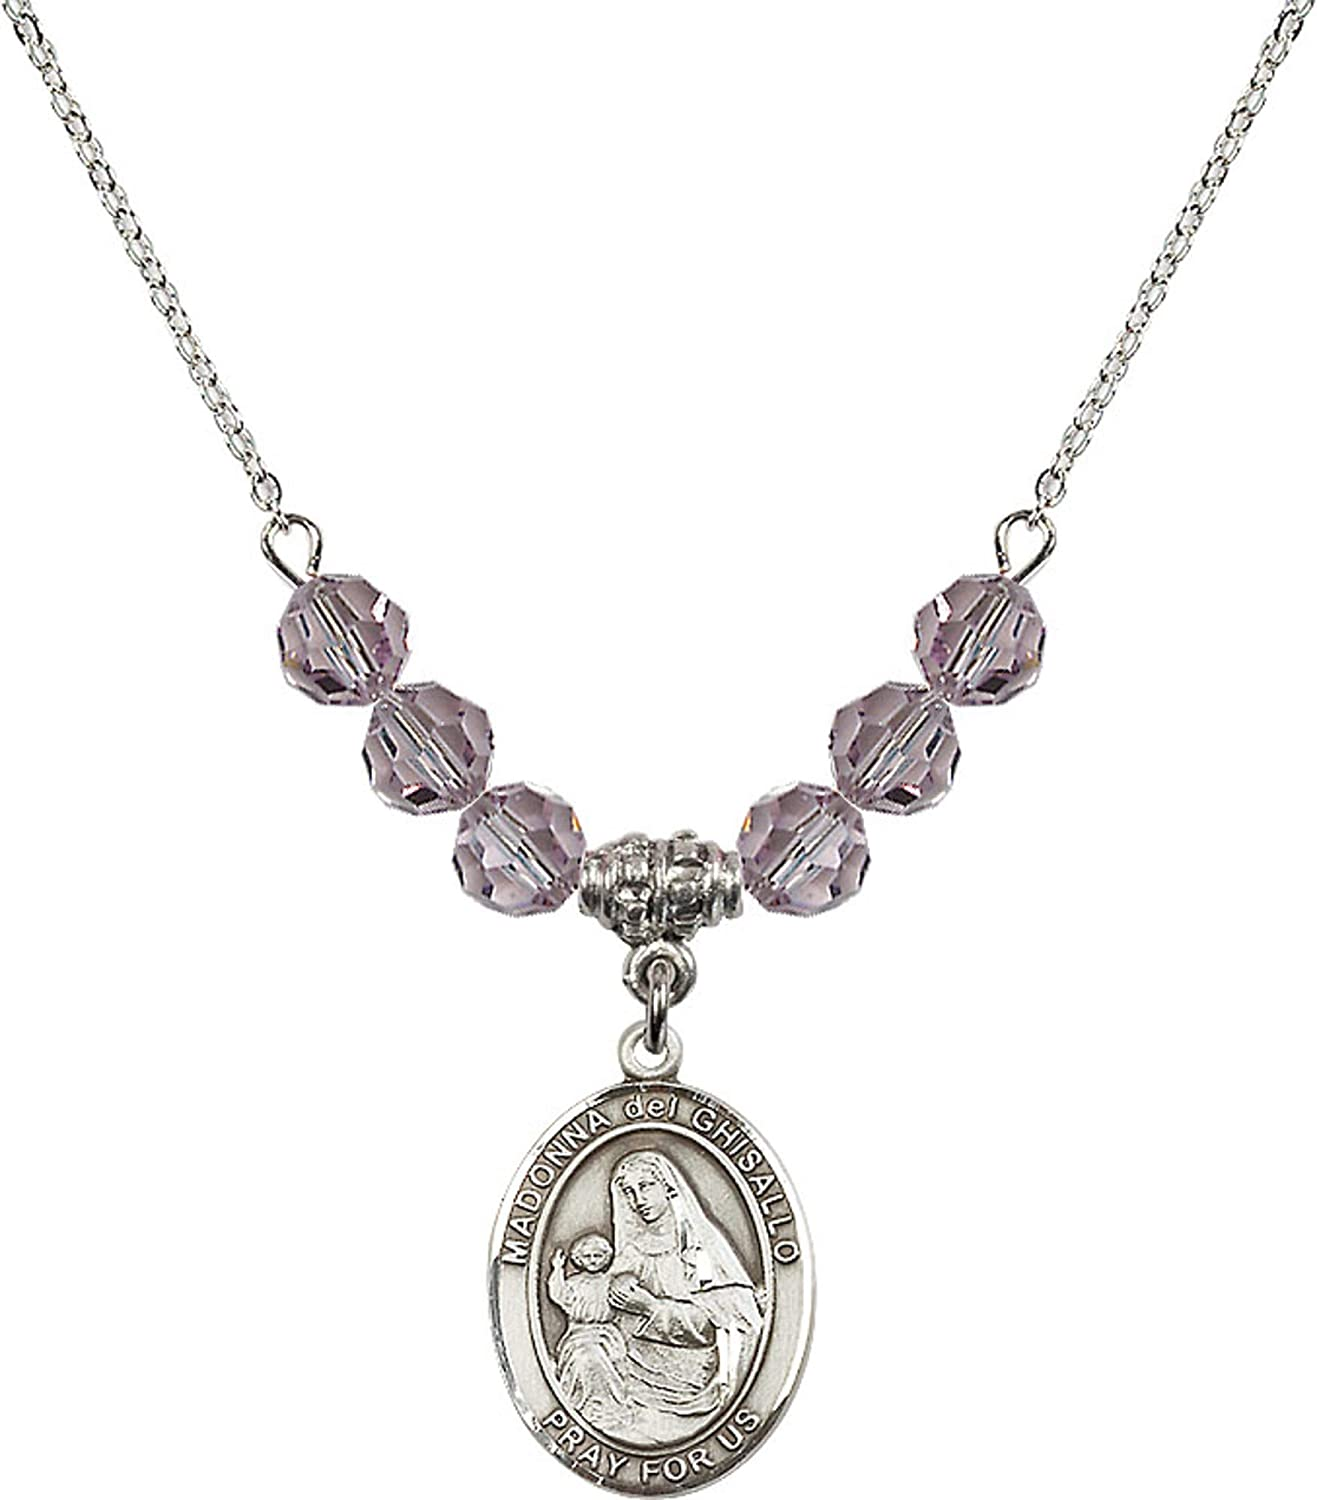 Bonyak Jewelry 18 Inch Rhodium Plated Necklace w// 6mm Light Purple February Birth Month Stone Beads and Madonna del Ghisallo Charm